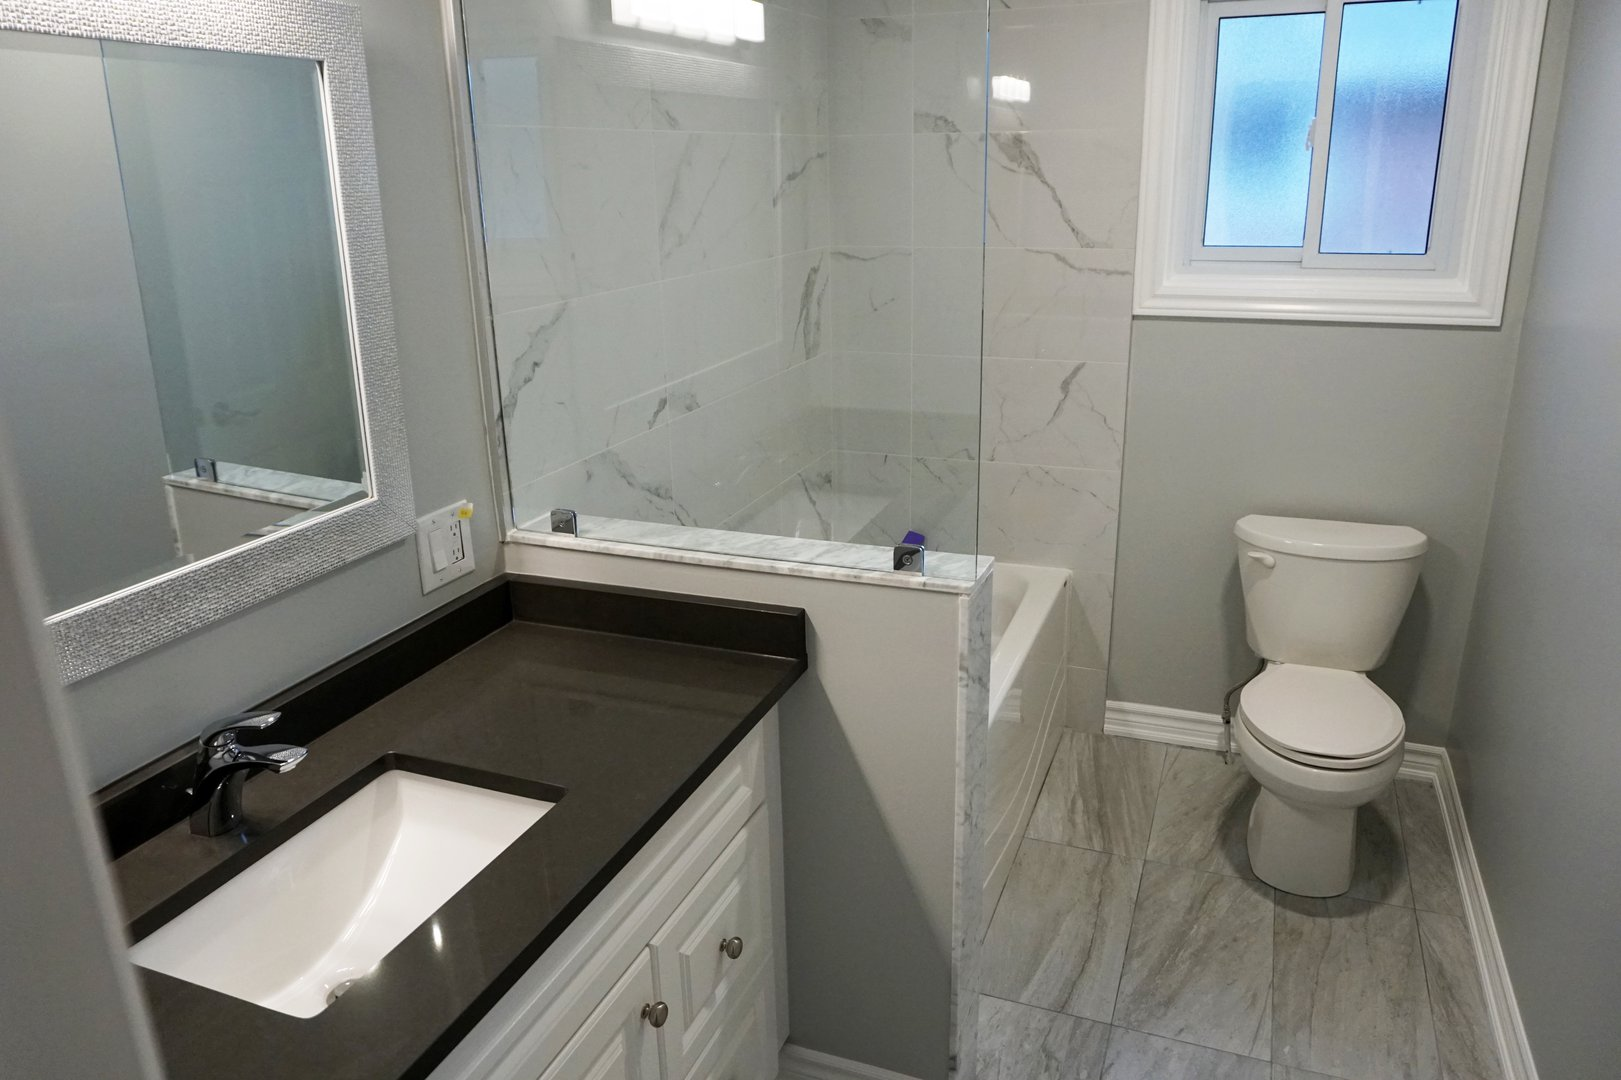 Apartment for rent at 89 David Ave, Hamilton, ON. This is the bathroom with tile floor and natural light.